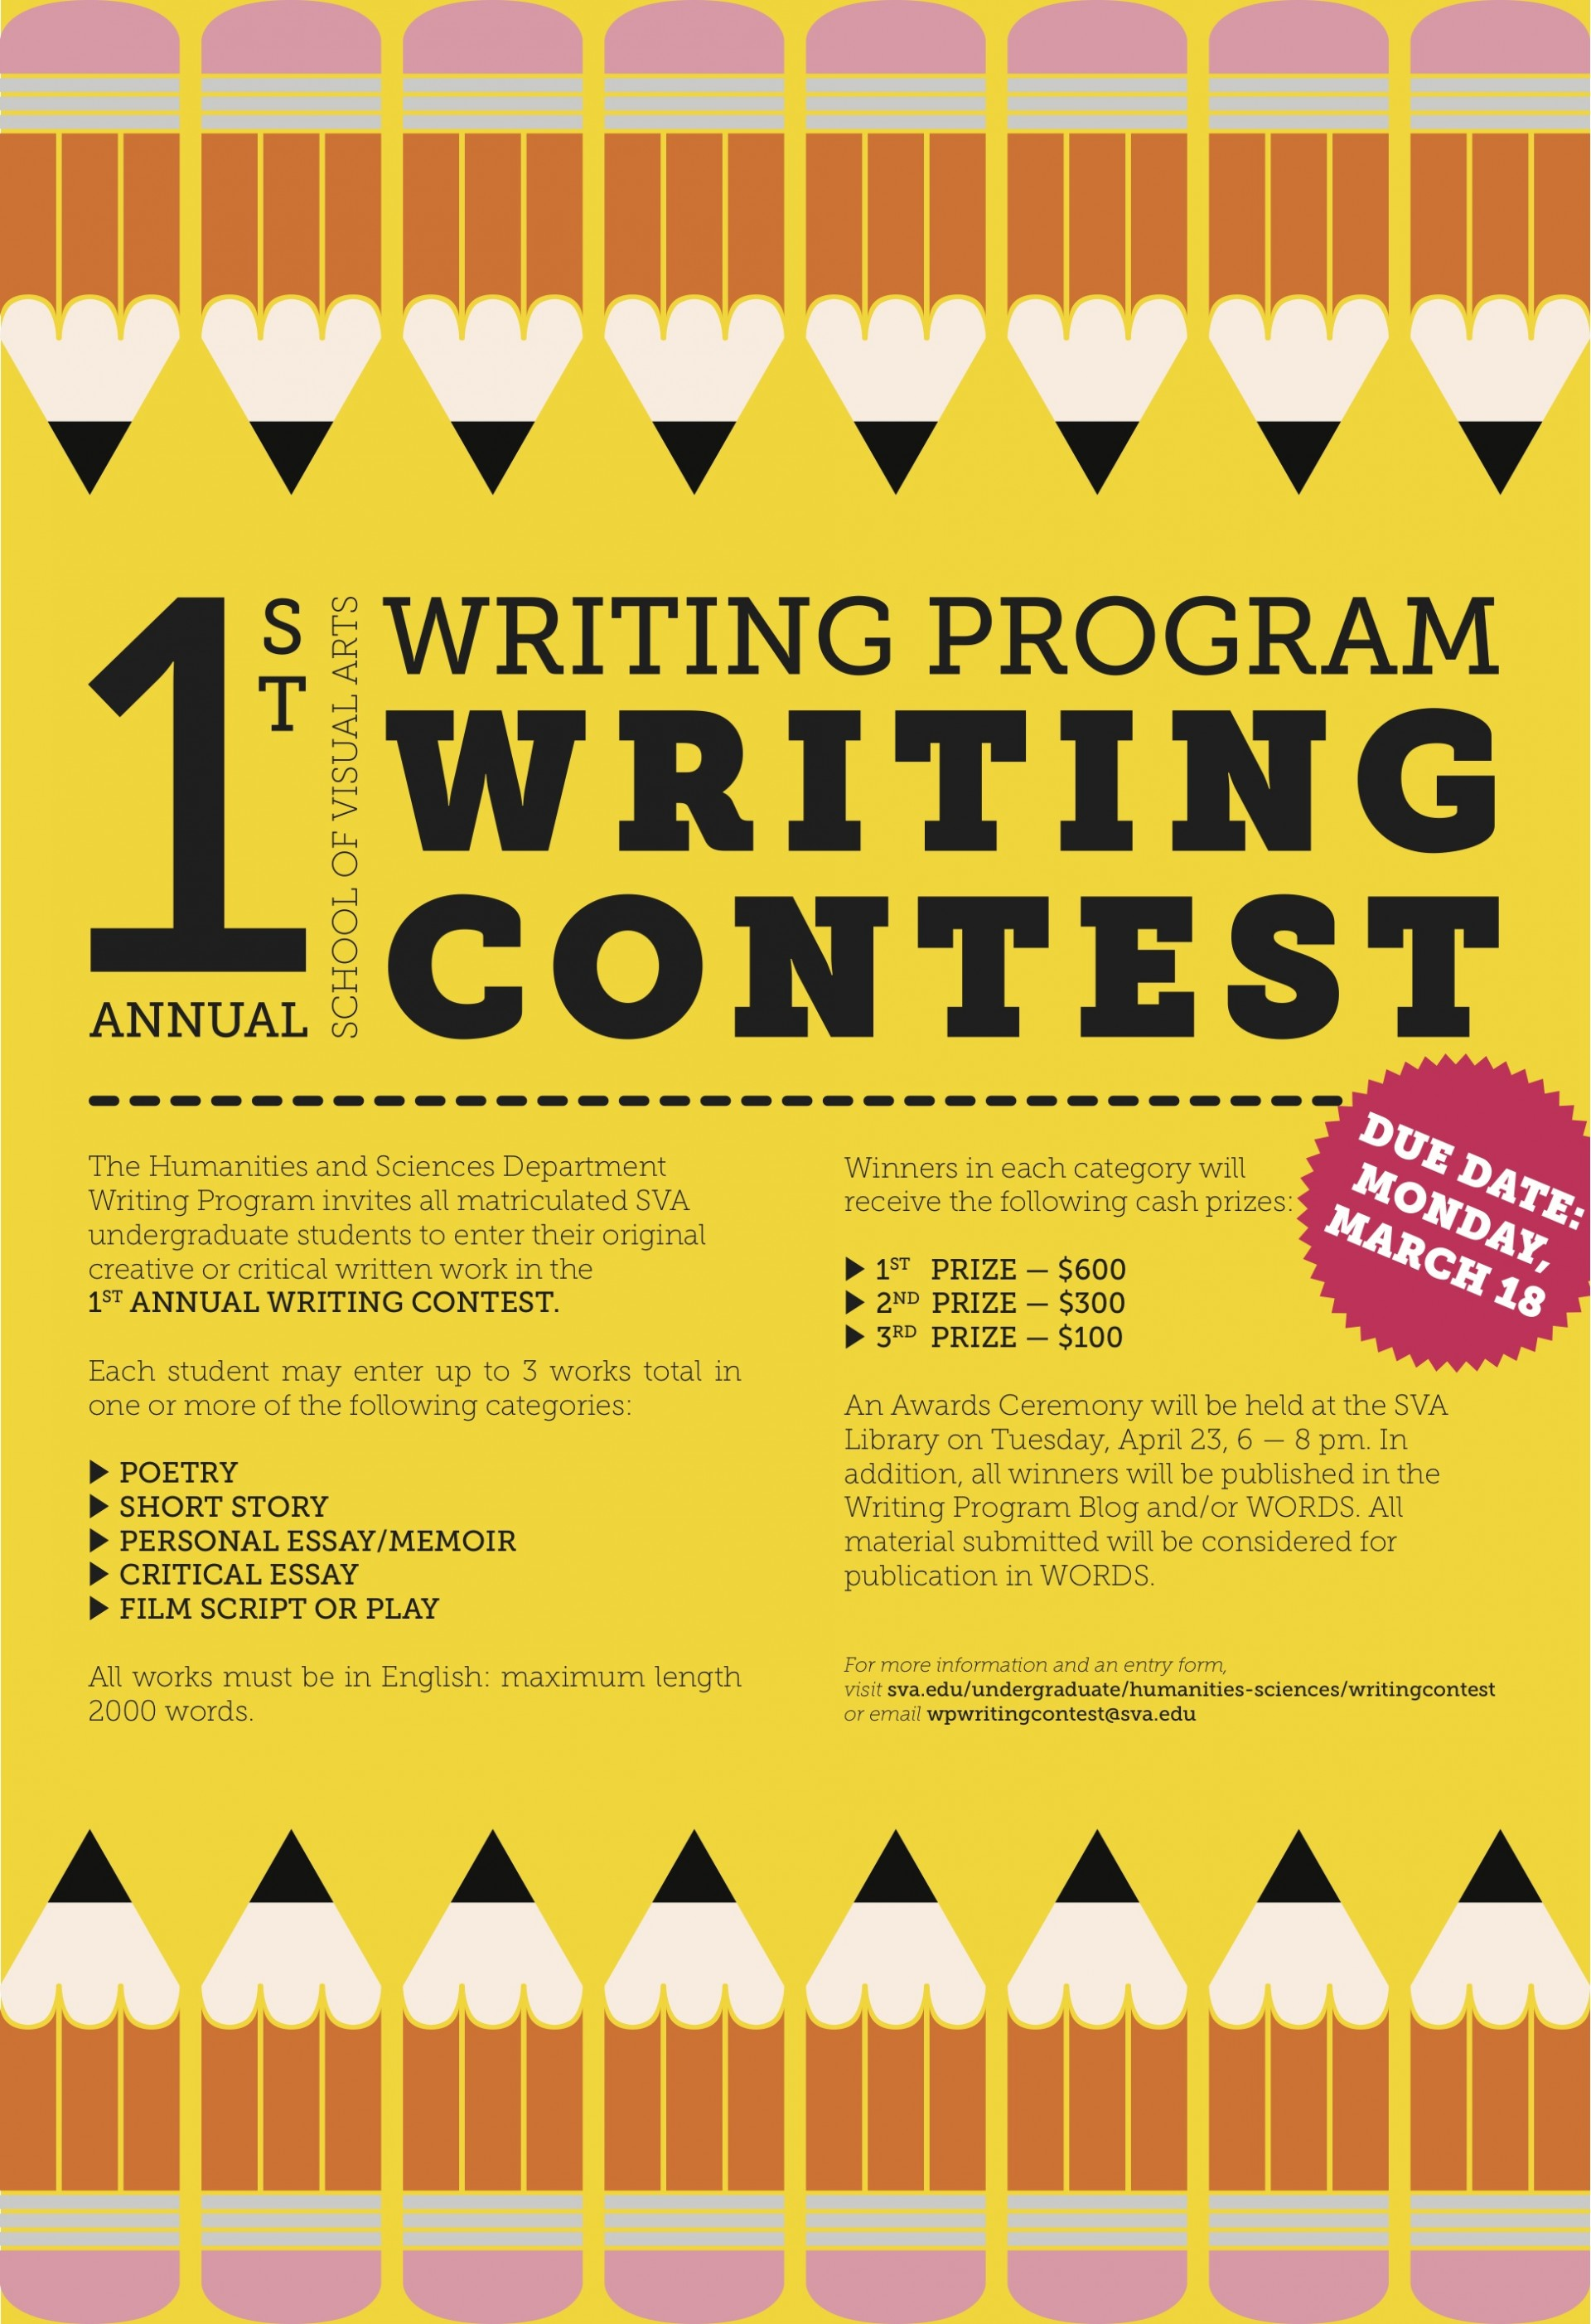 010 Essay Writing Blog 1st Annual Sva Program Contest Criteria Objectives Rubrics Tips Philippines For Nutrition Month Guidelines Mechanics Incredible International Competitions High School Students Rules By Essayhub 1920